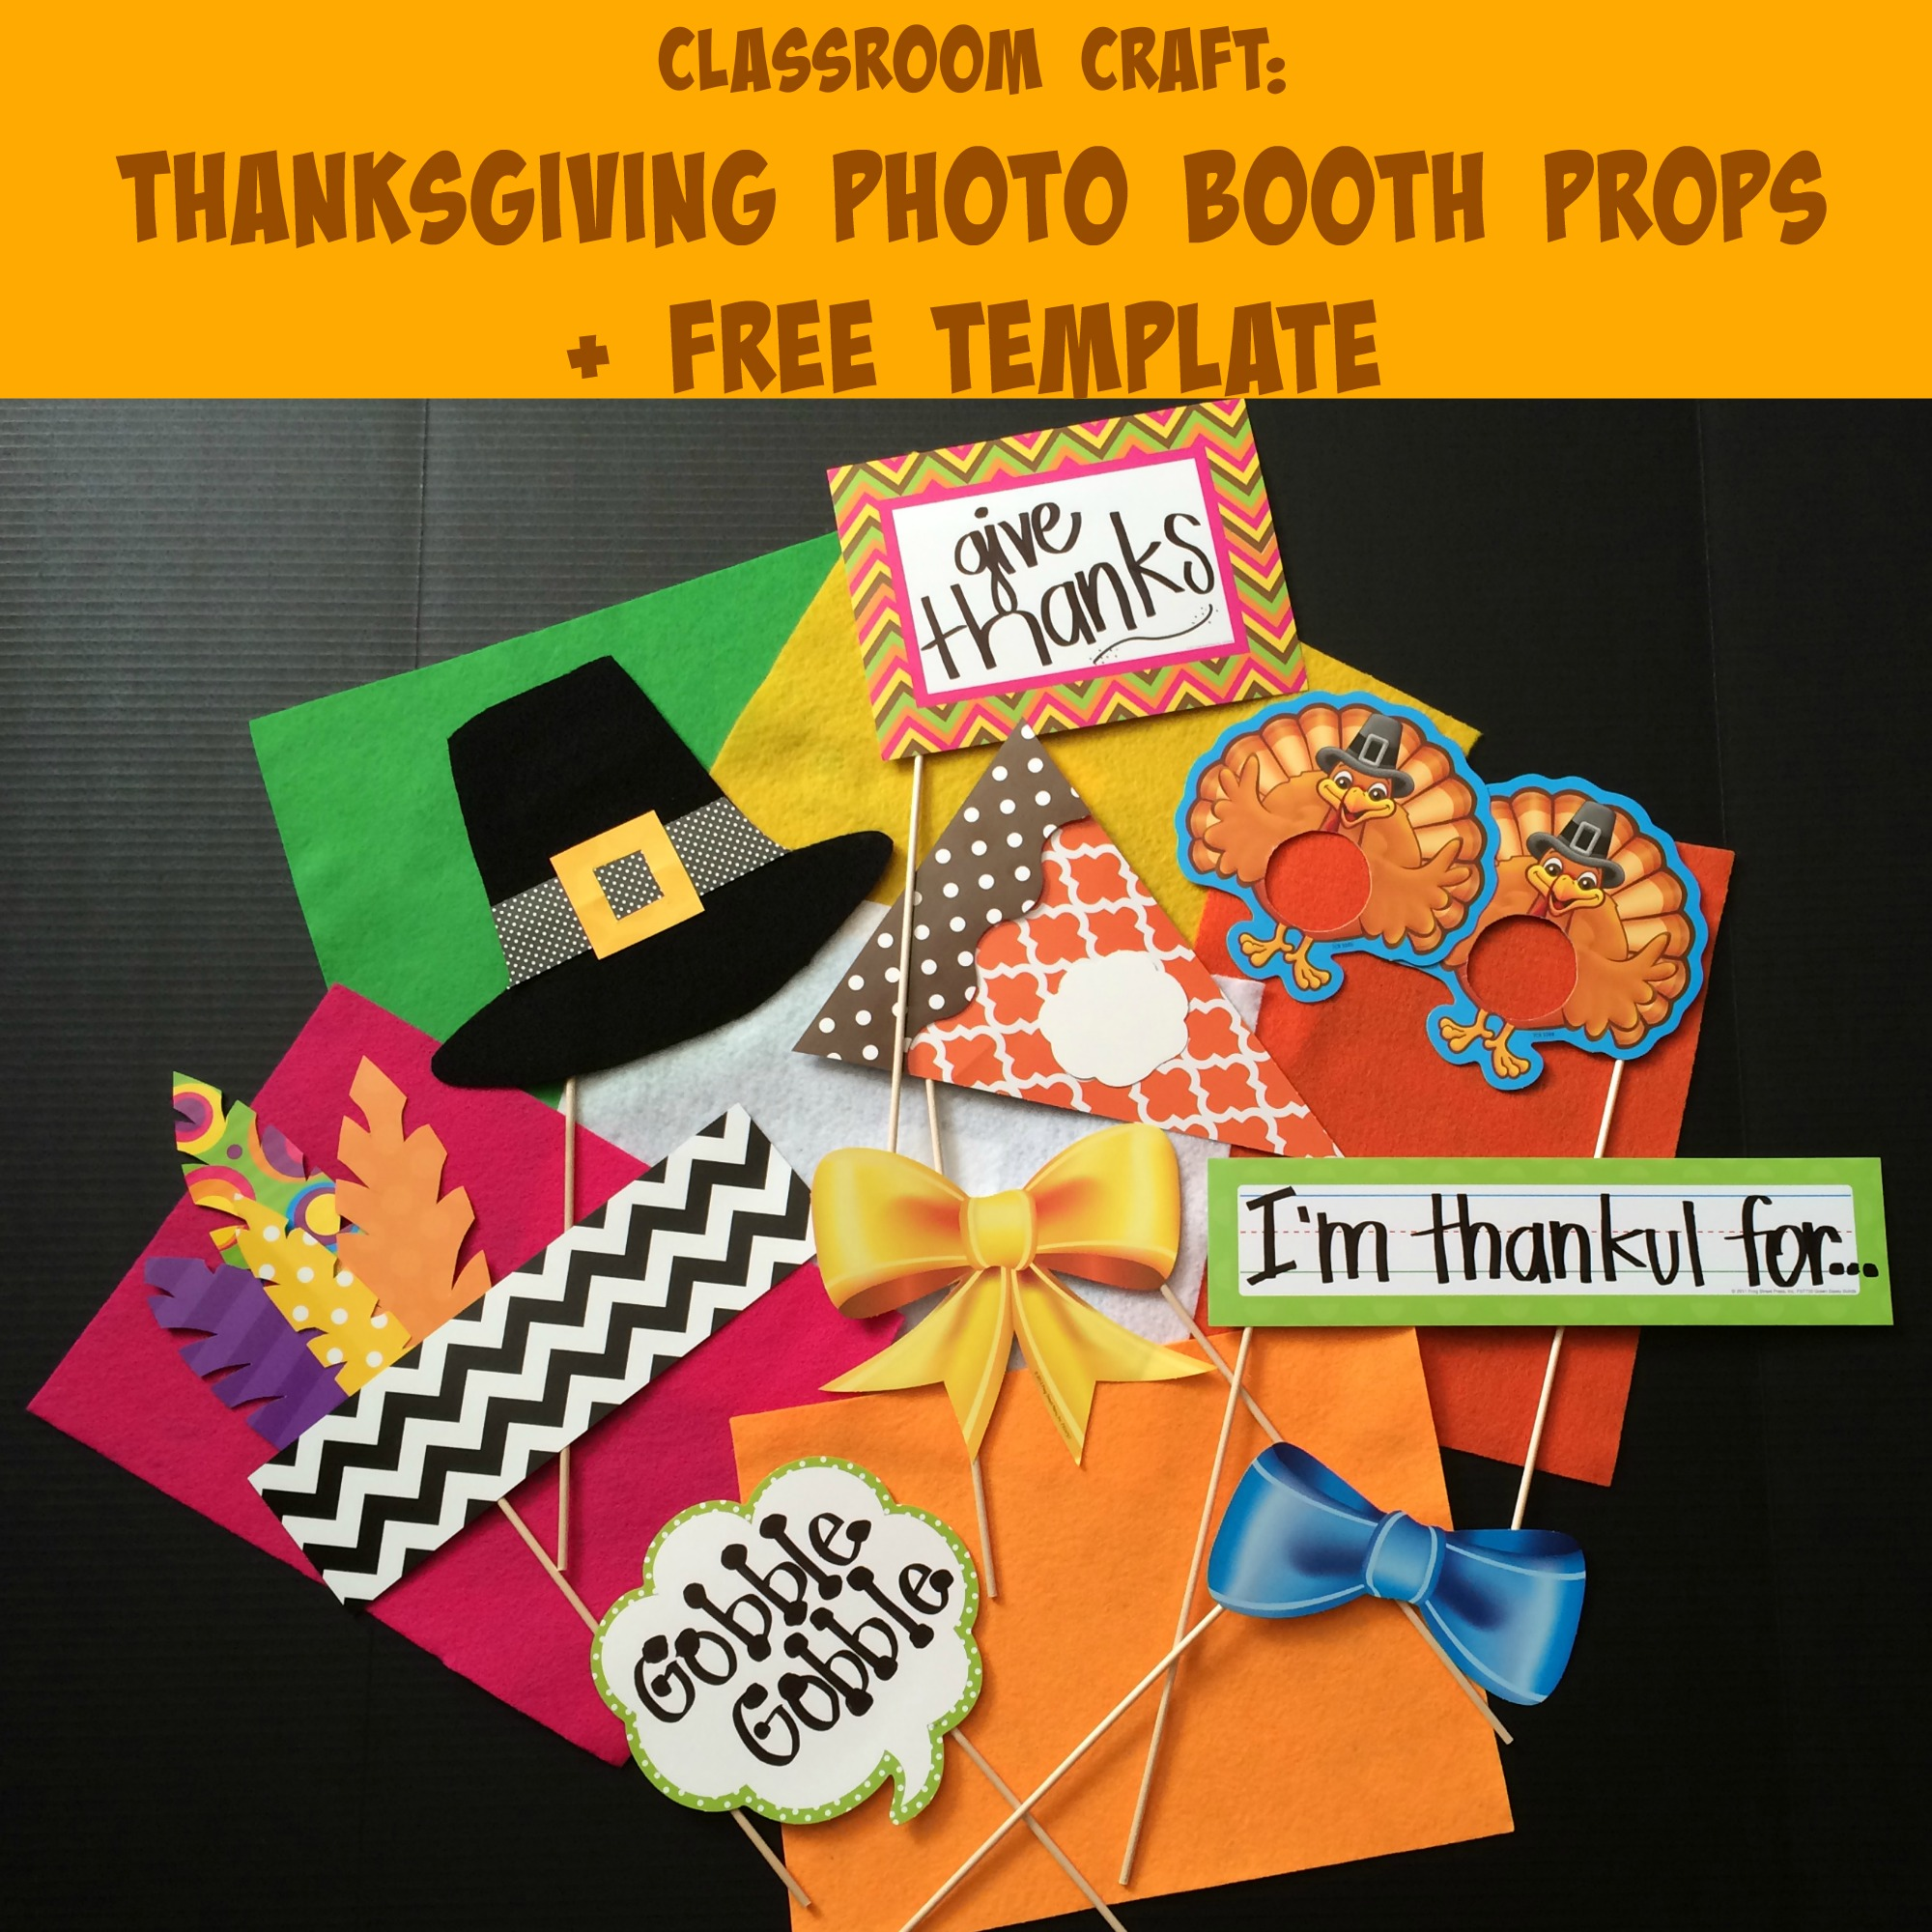 Thanksgiving Photo Booth Props For The Classroom Free Template